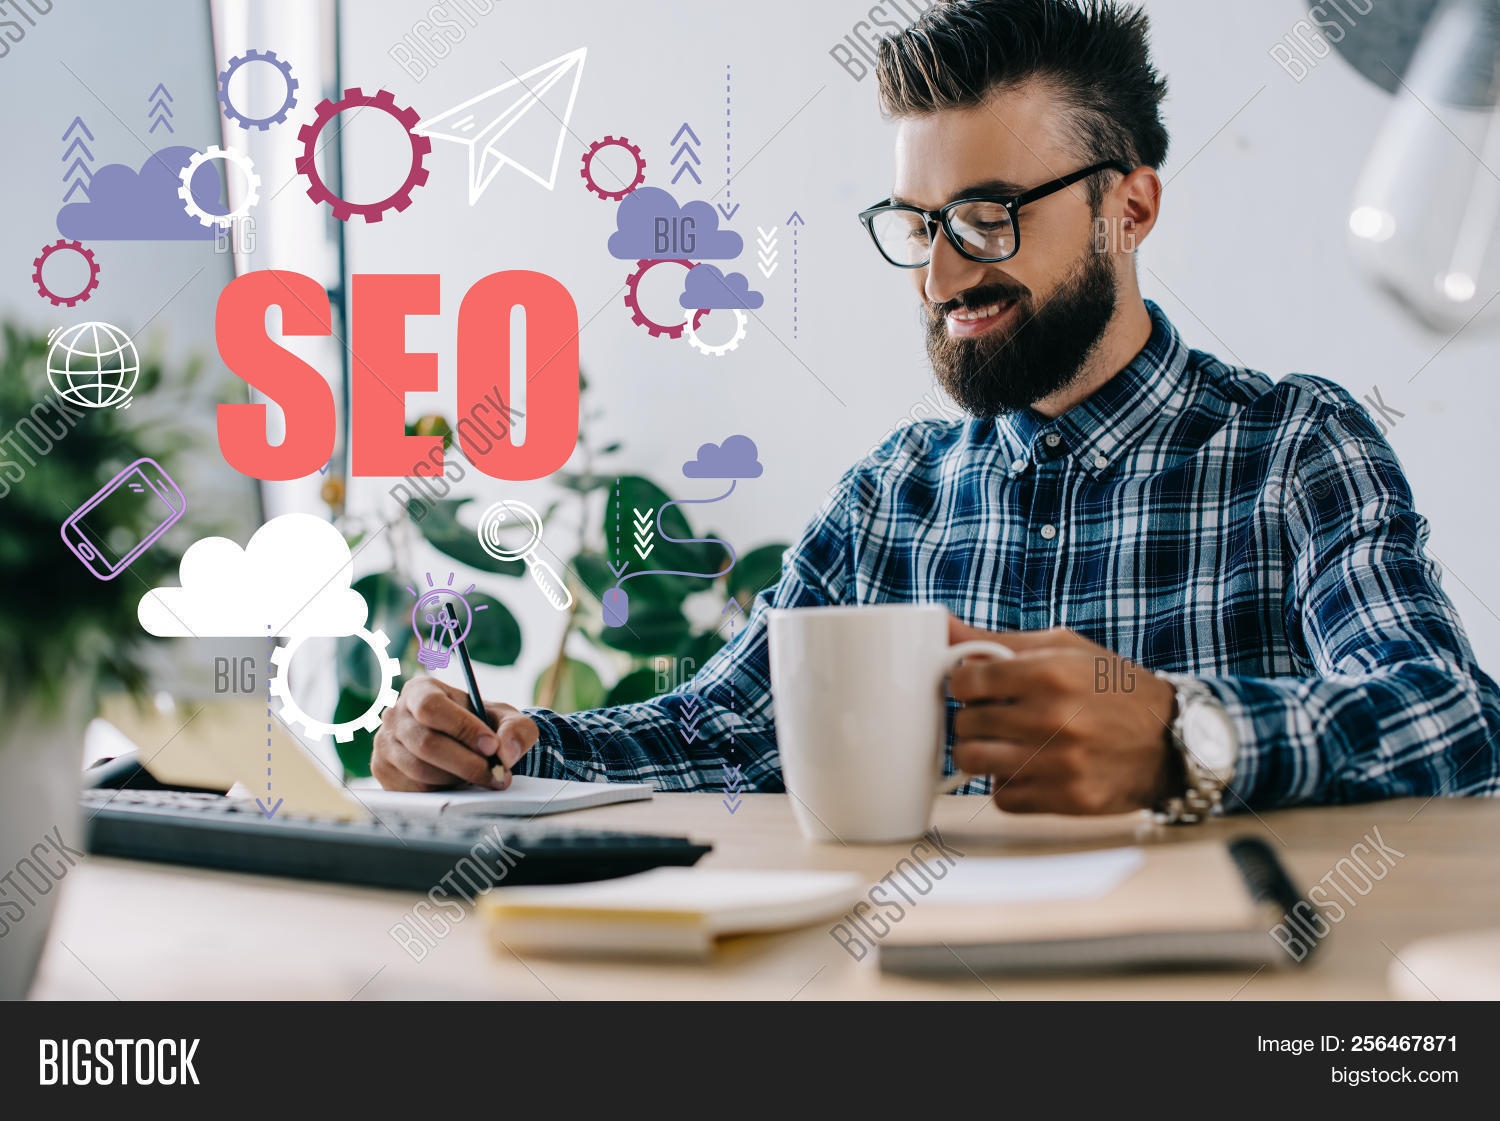 adult,bearded,business,businessman,casual,coffee,computer,corporate,cup,develop,developer,development,drink,electronics,engine,gadget,handsome,icons,ideas,indoor,information,innovation,internet,it,job,male,marketing,media,network,occupation,office,optimization,people,person,plaid,profession,professional,search,seo,shirt,social,strategy,success,successful,support,web,work,workplace,workspace,young